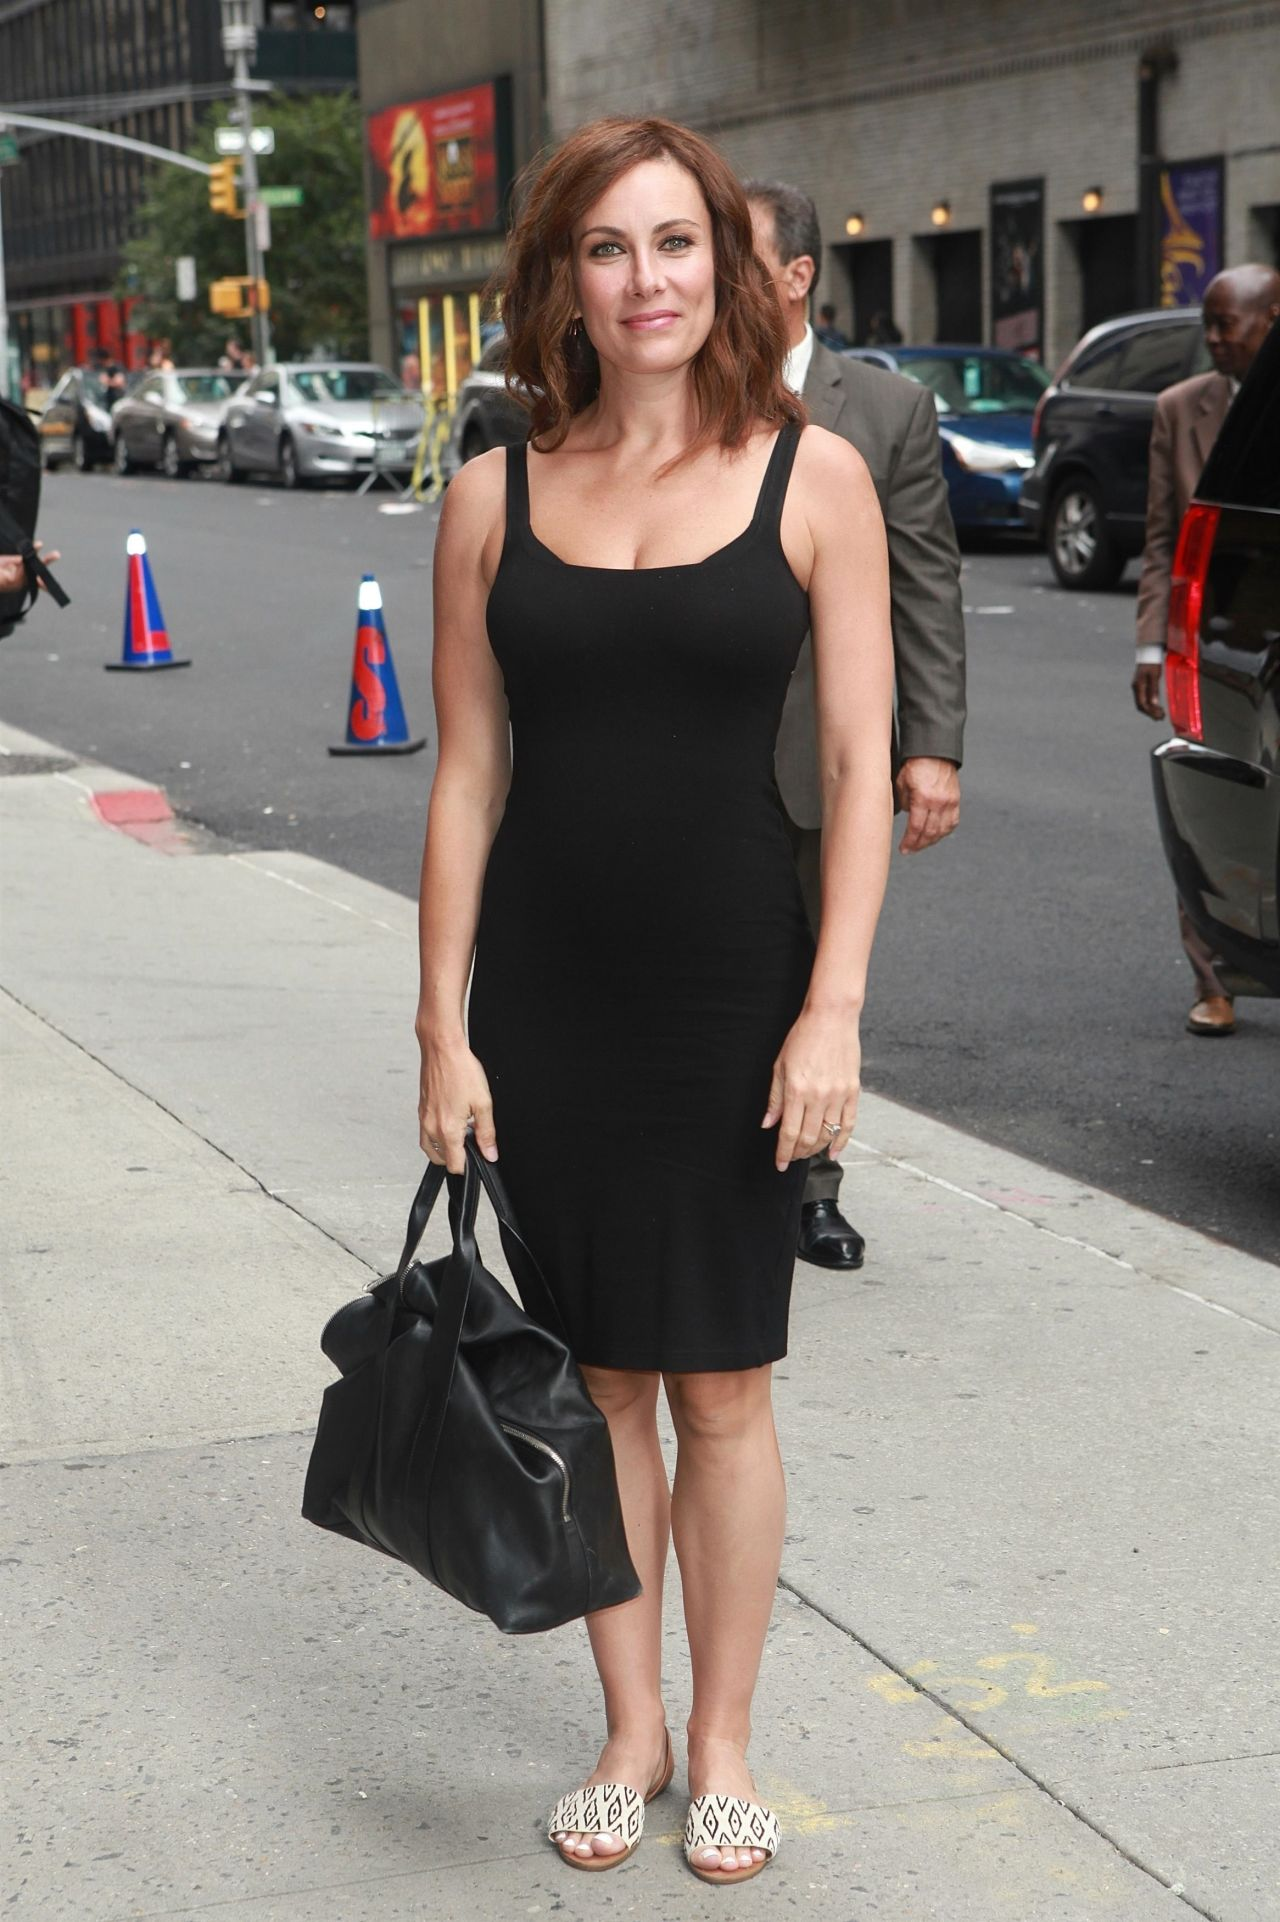 Laura Benanti Arrive To Appear On The Late Show With